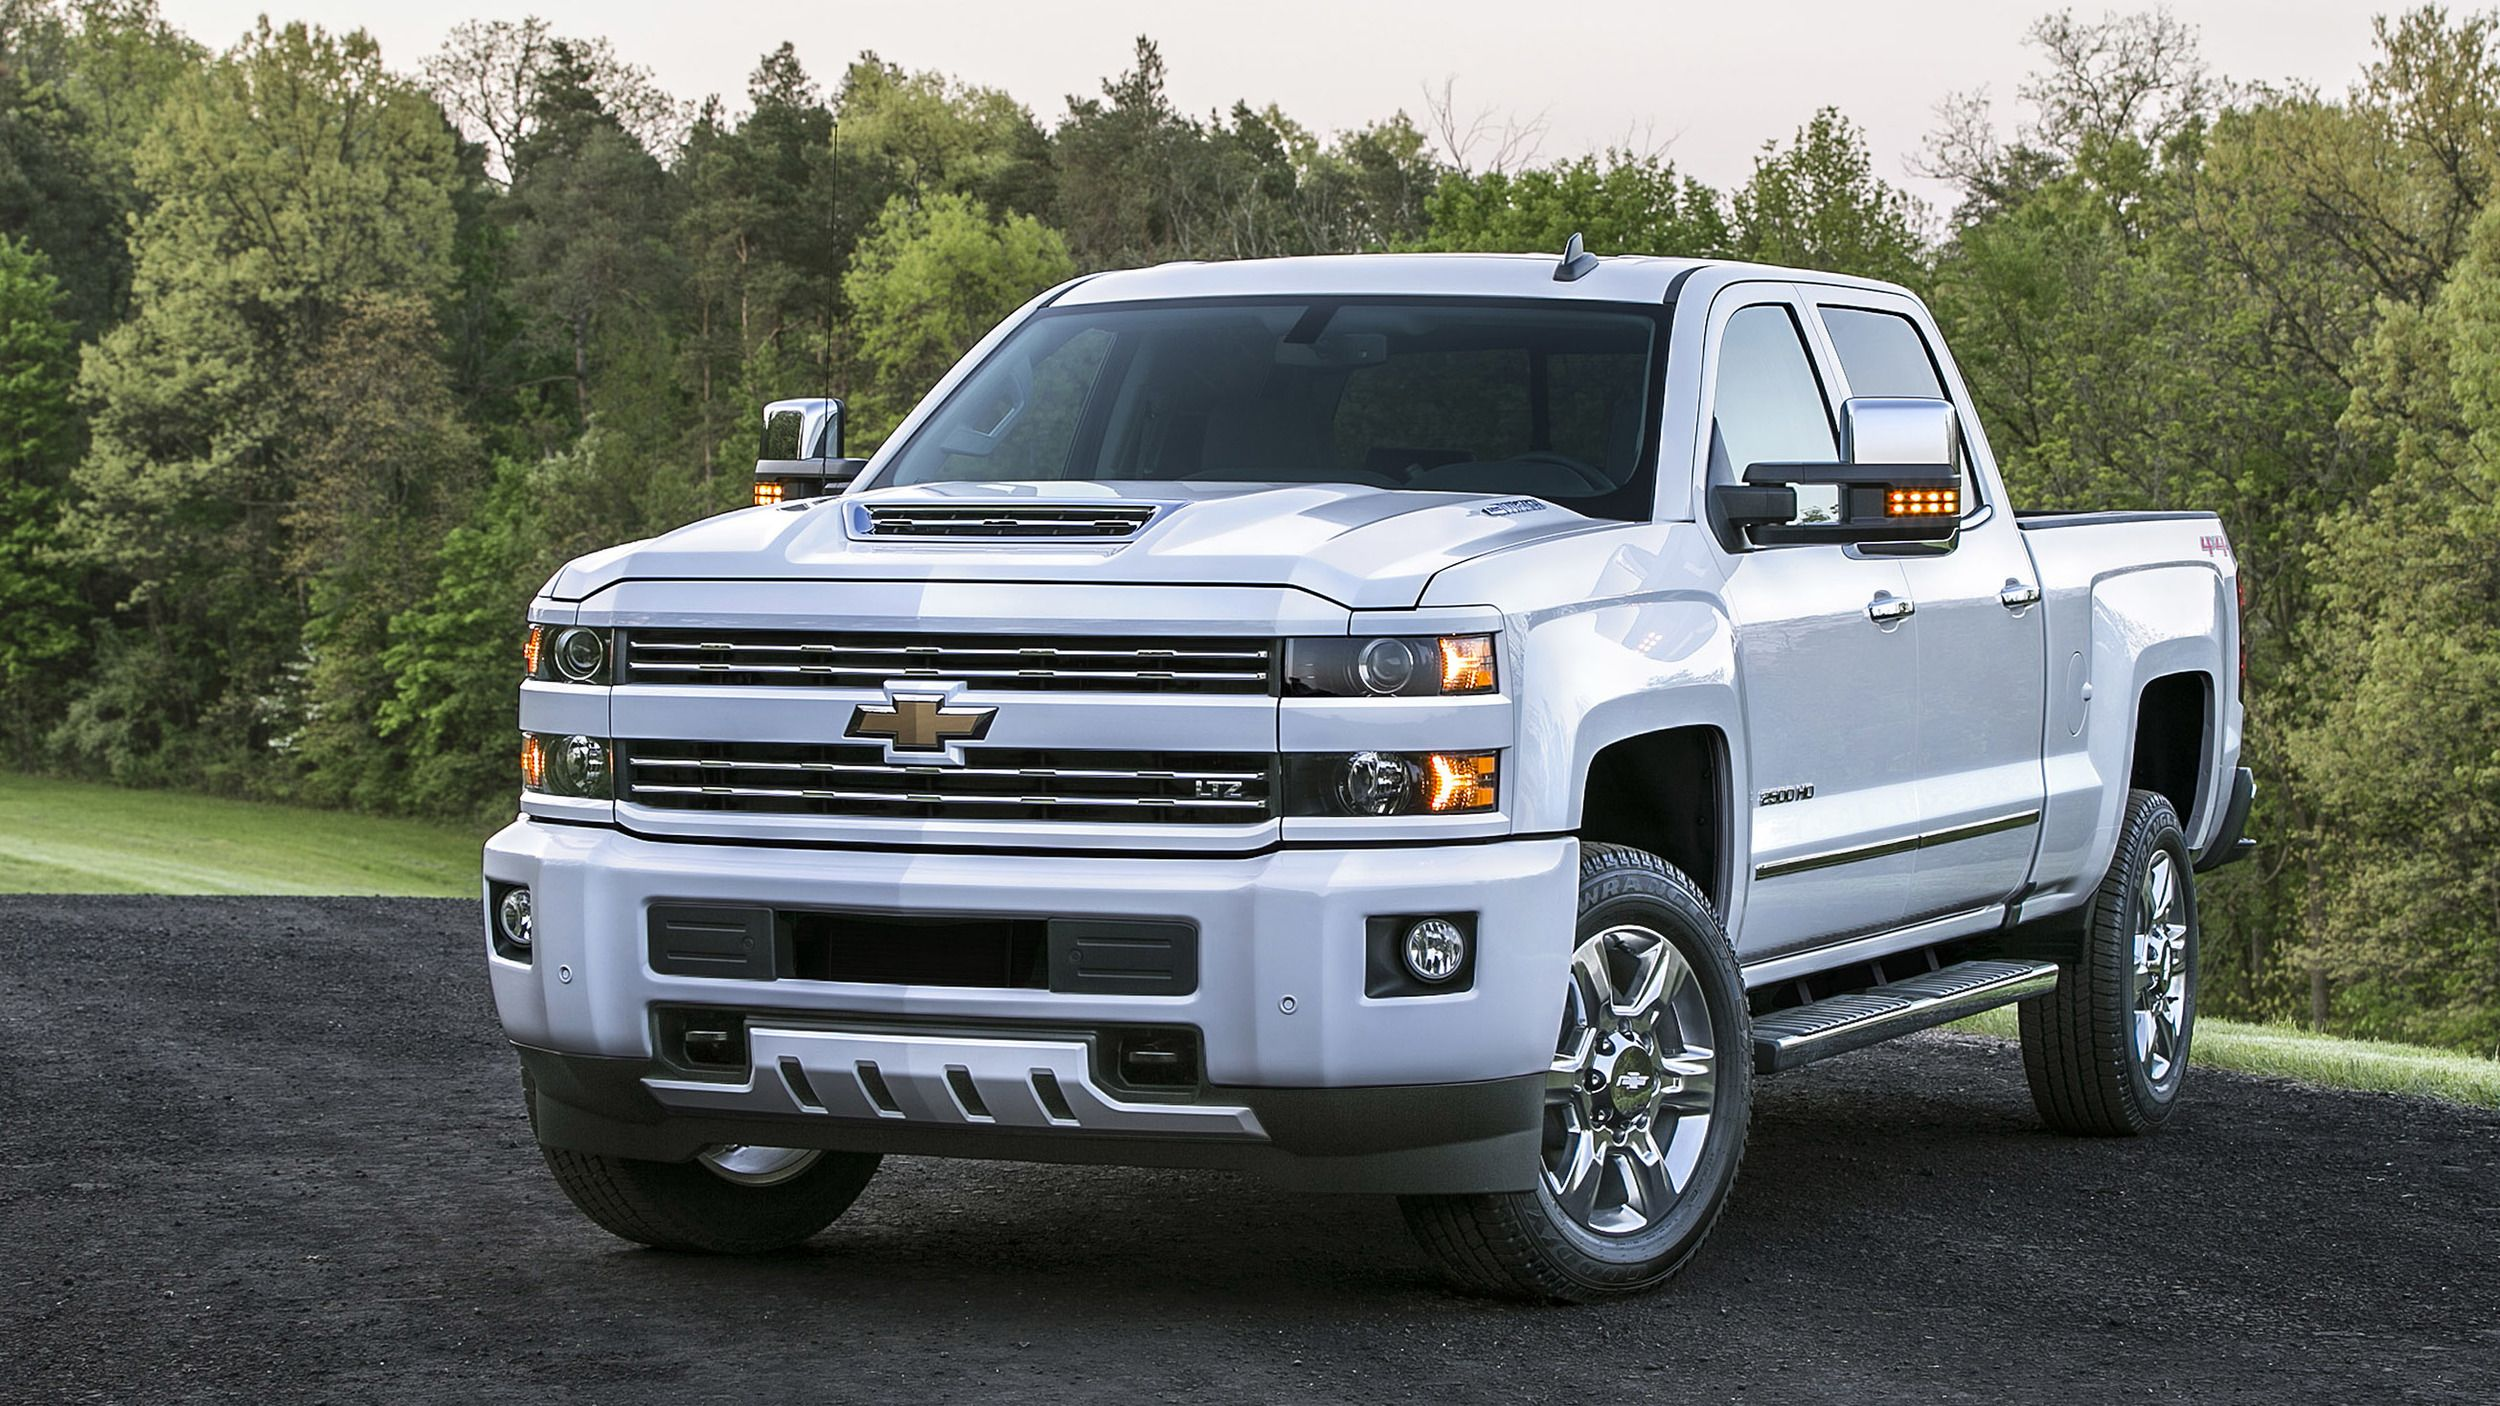 Articles 2018 Chevy Silverado Chevrolet Silverado 2500hd Chevy